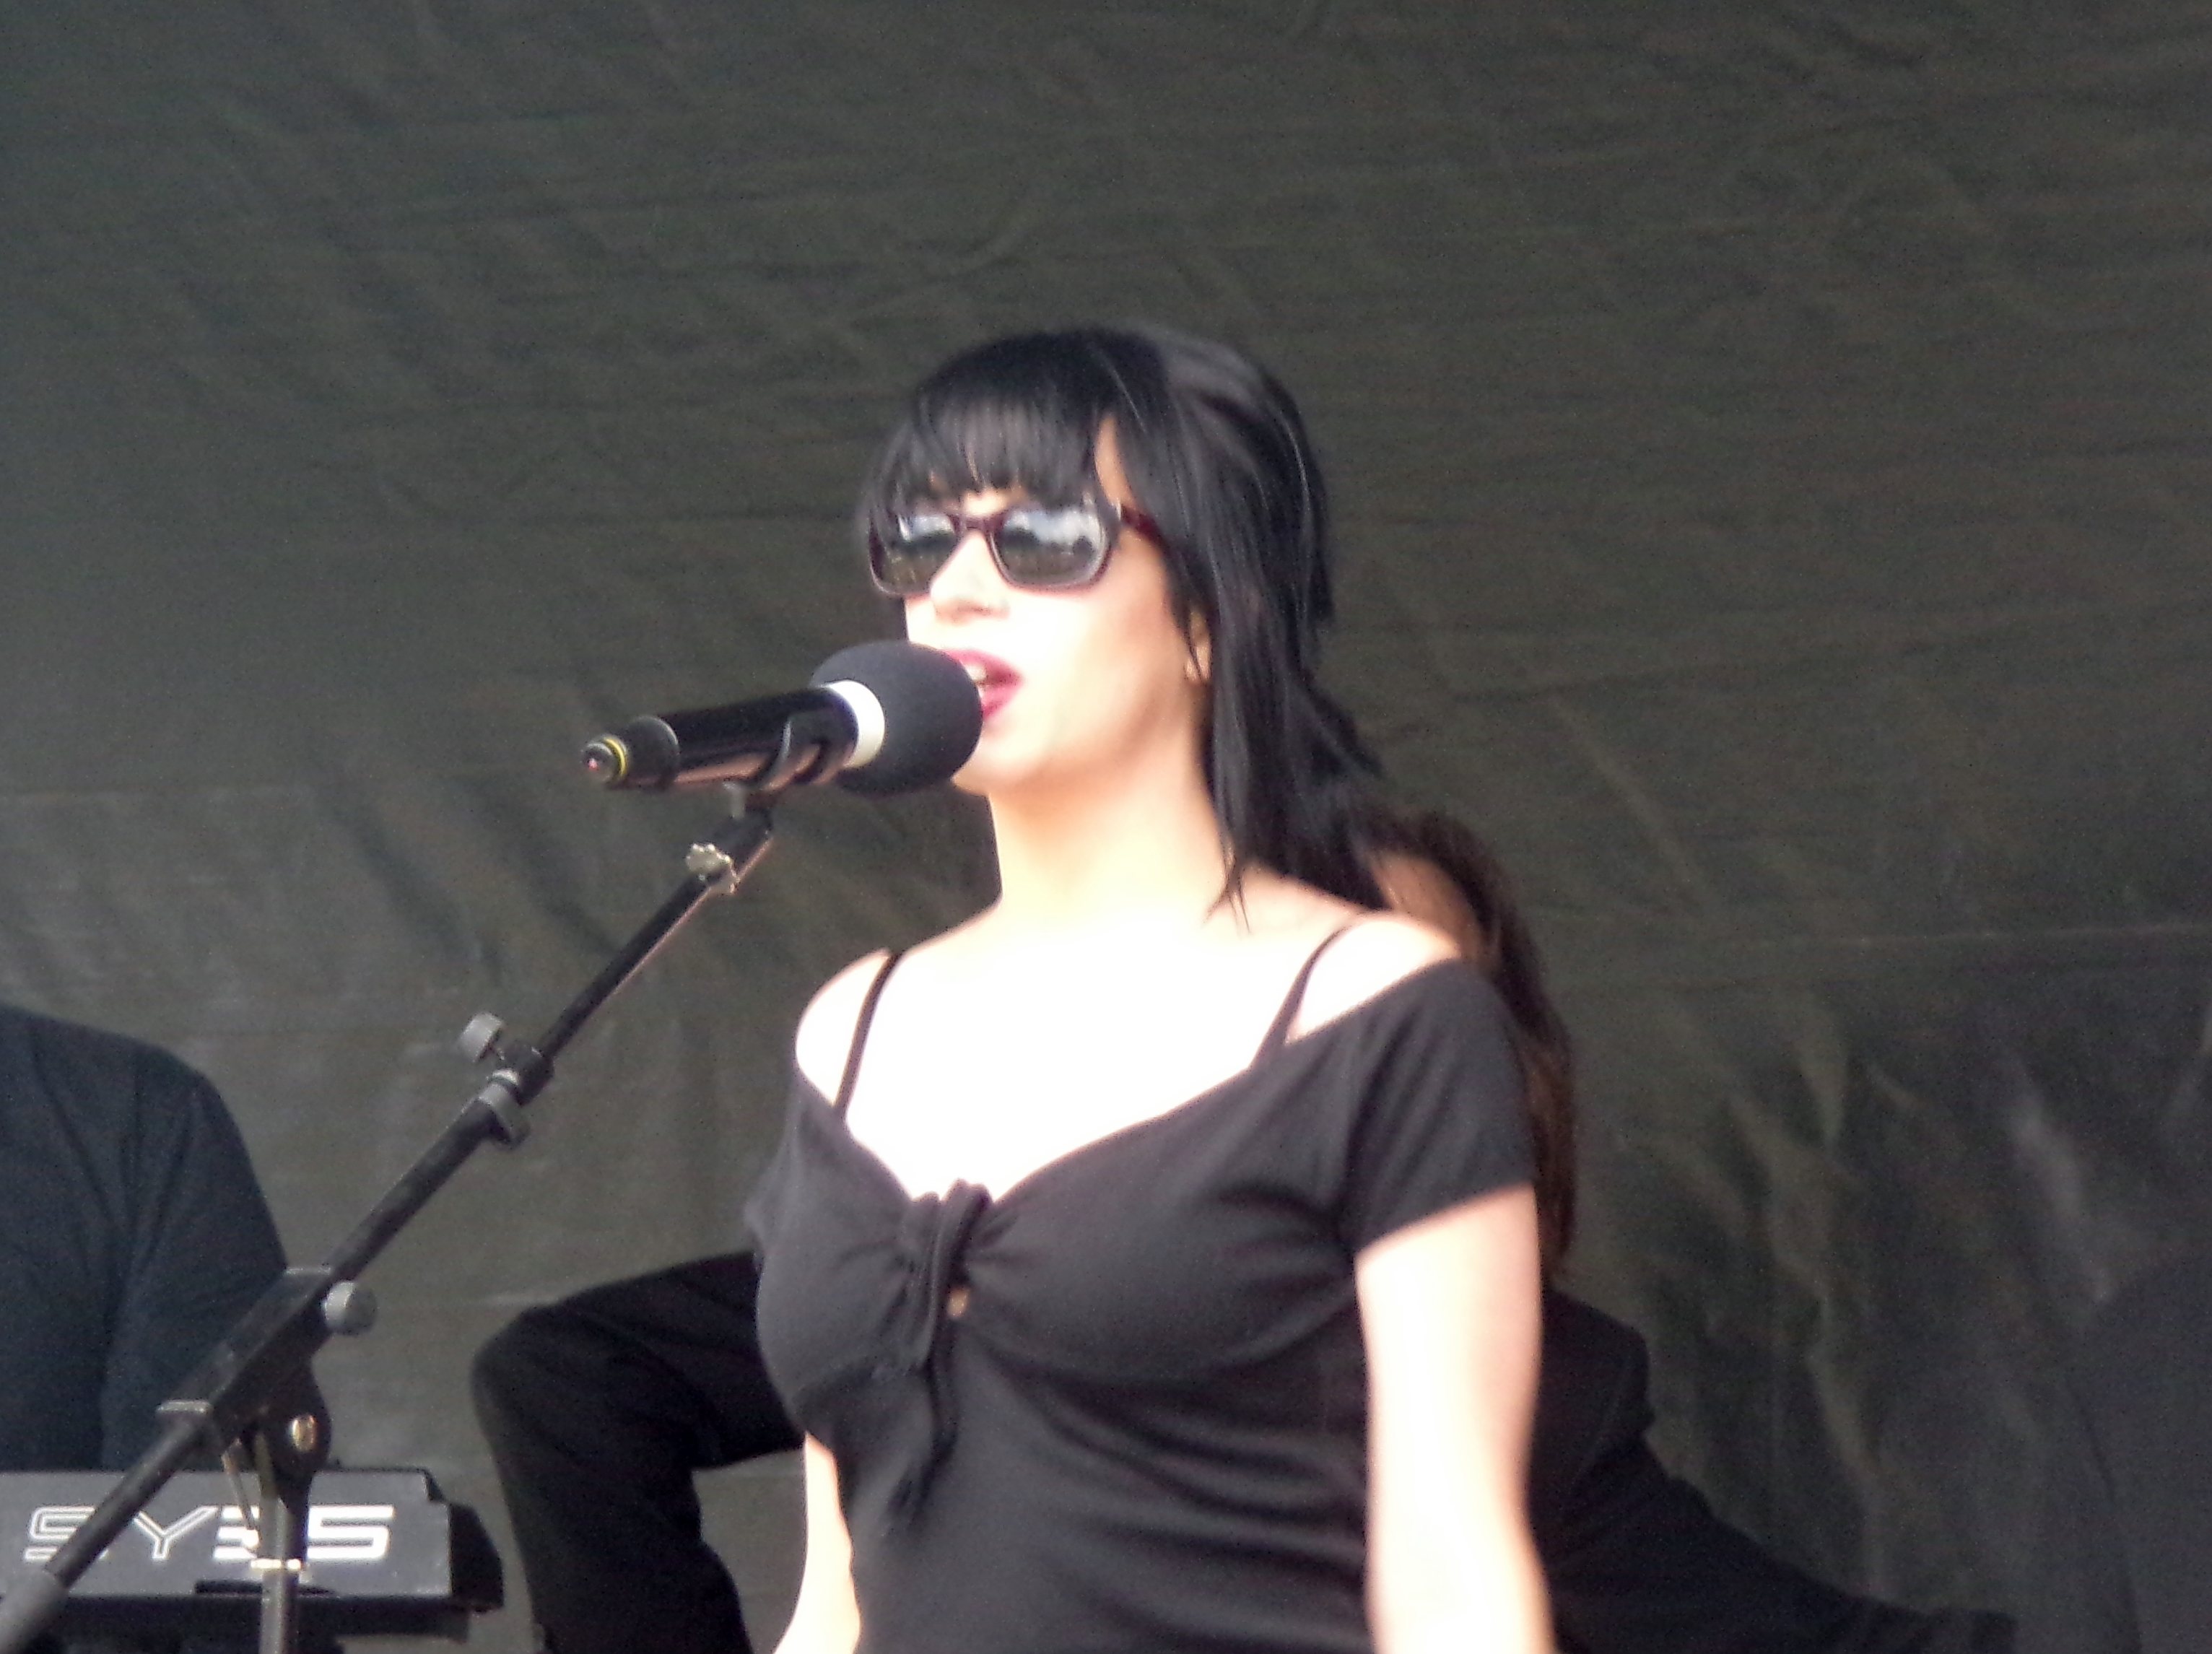 singer with sunglasses 5